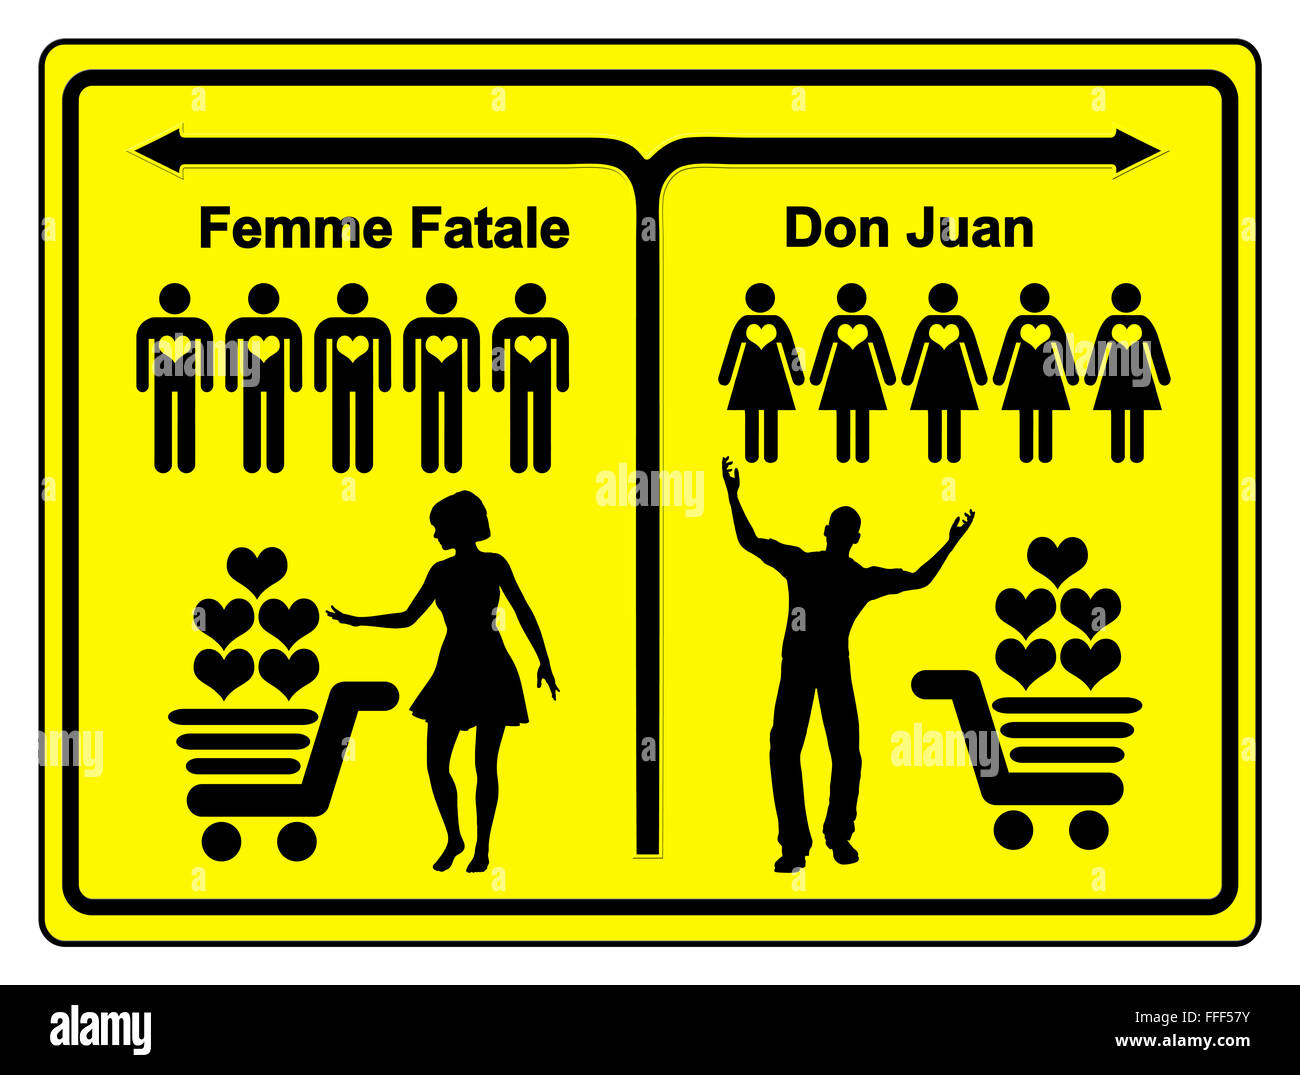 Femme Fatale and Don Juan - Stock Image